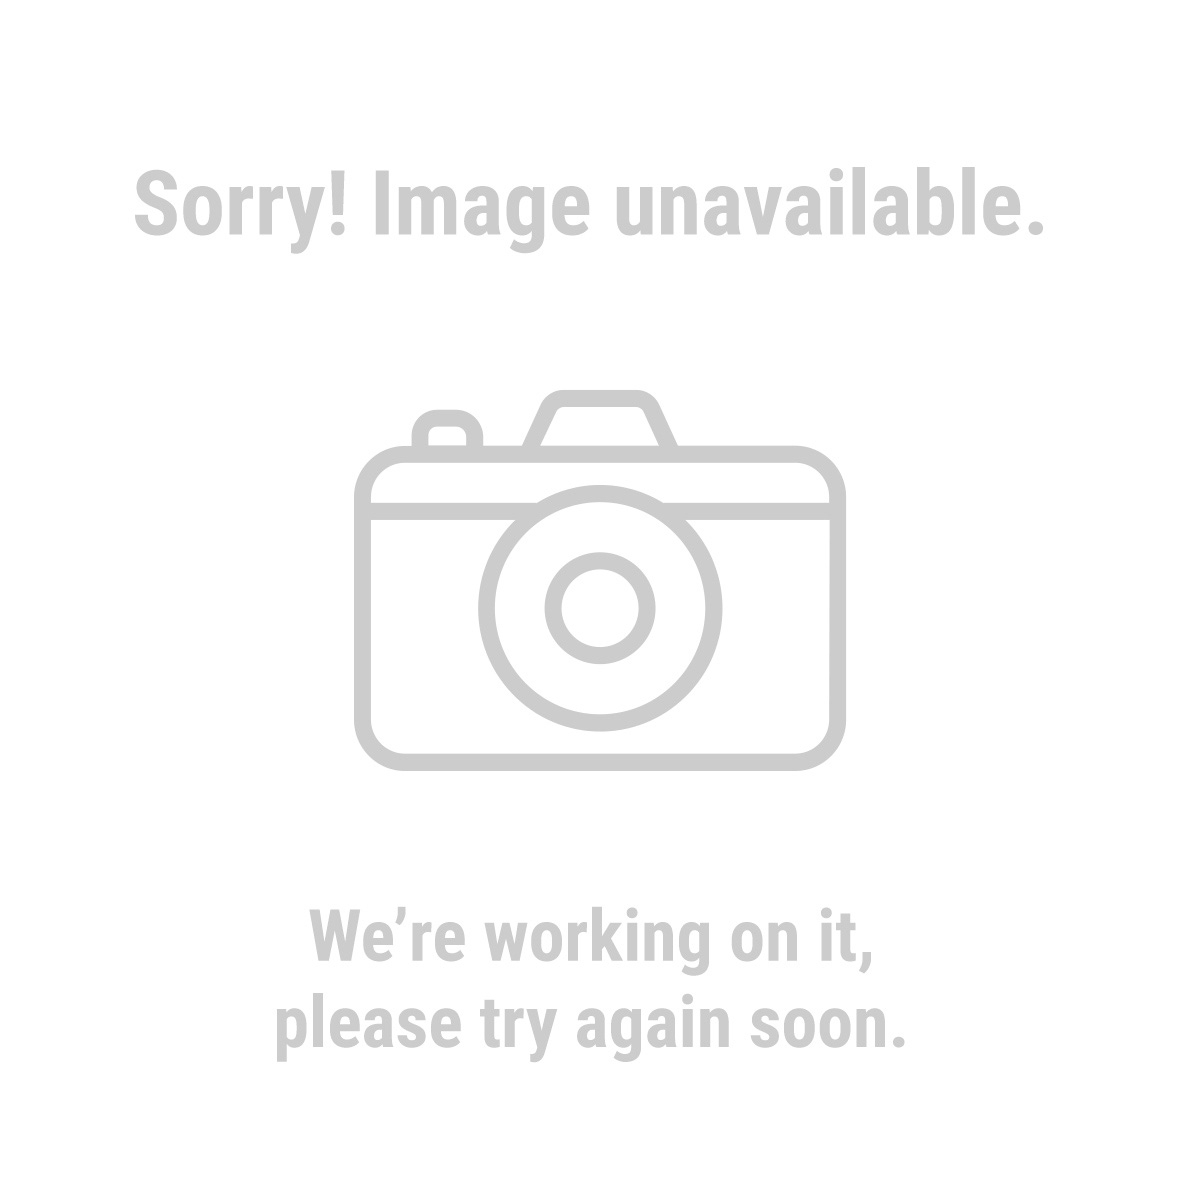 HARDY 68512 Pack of 50 Black Nitrile Gloves, Size X-Large